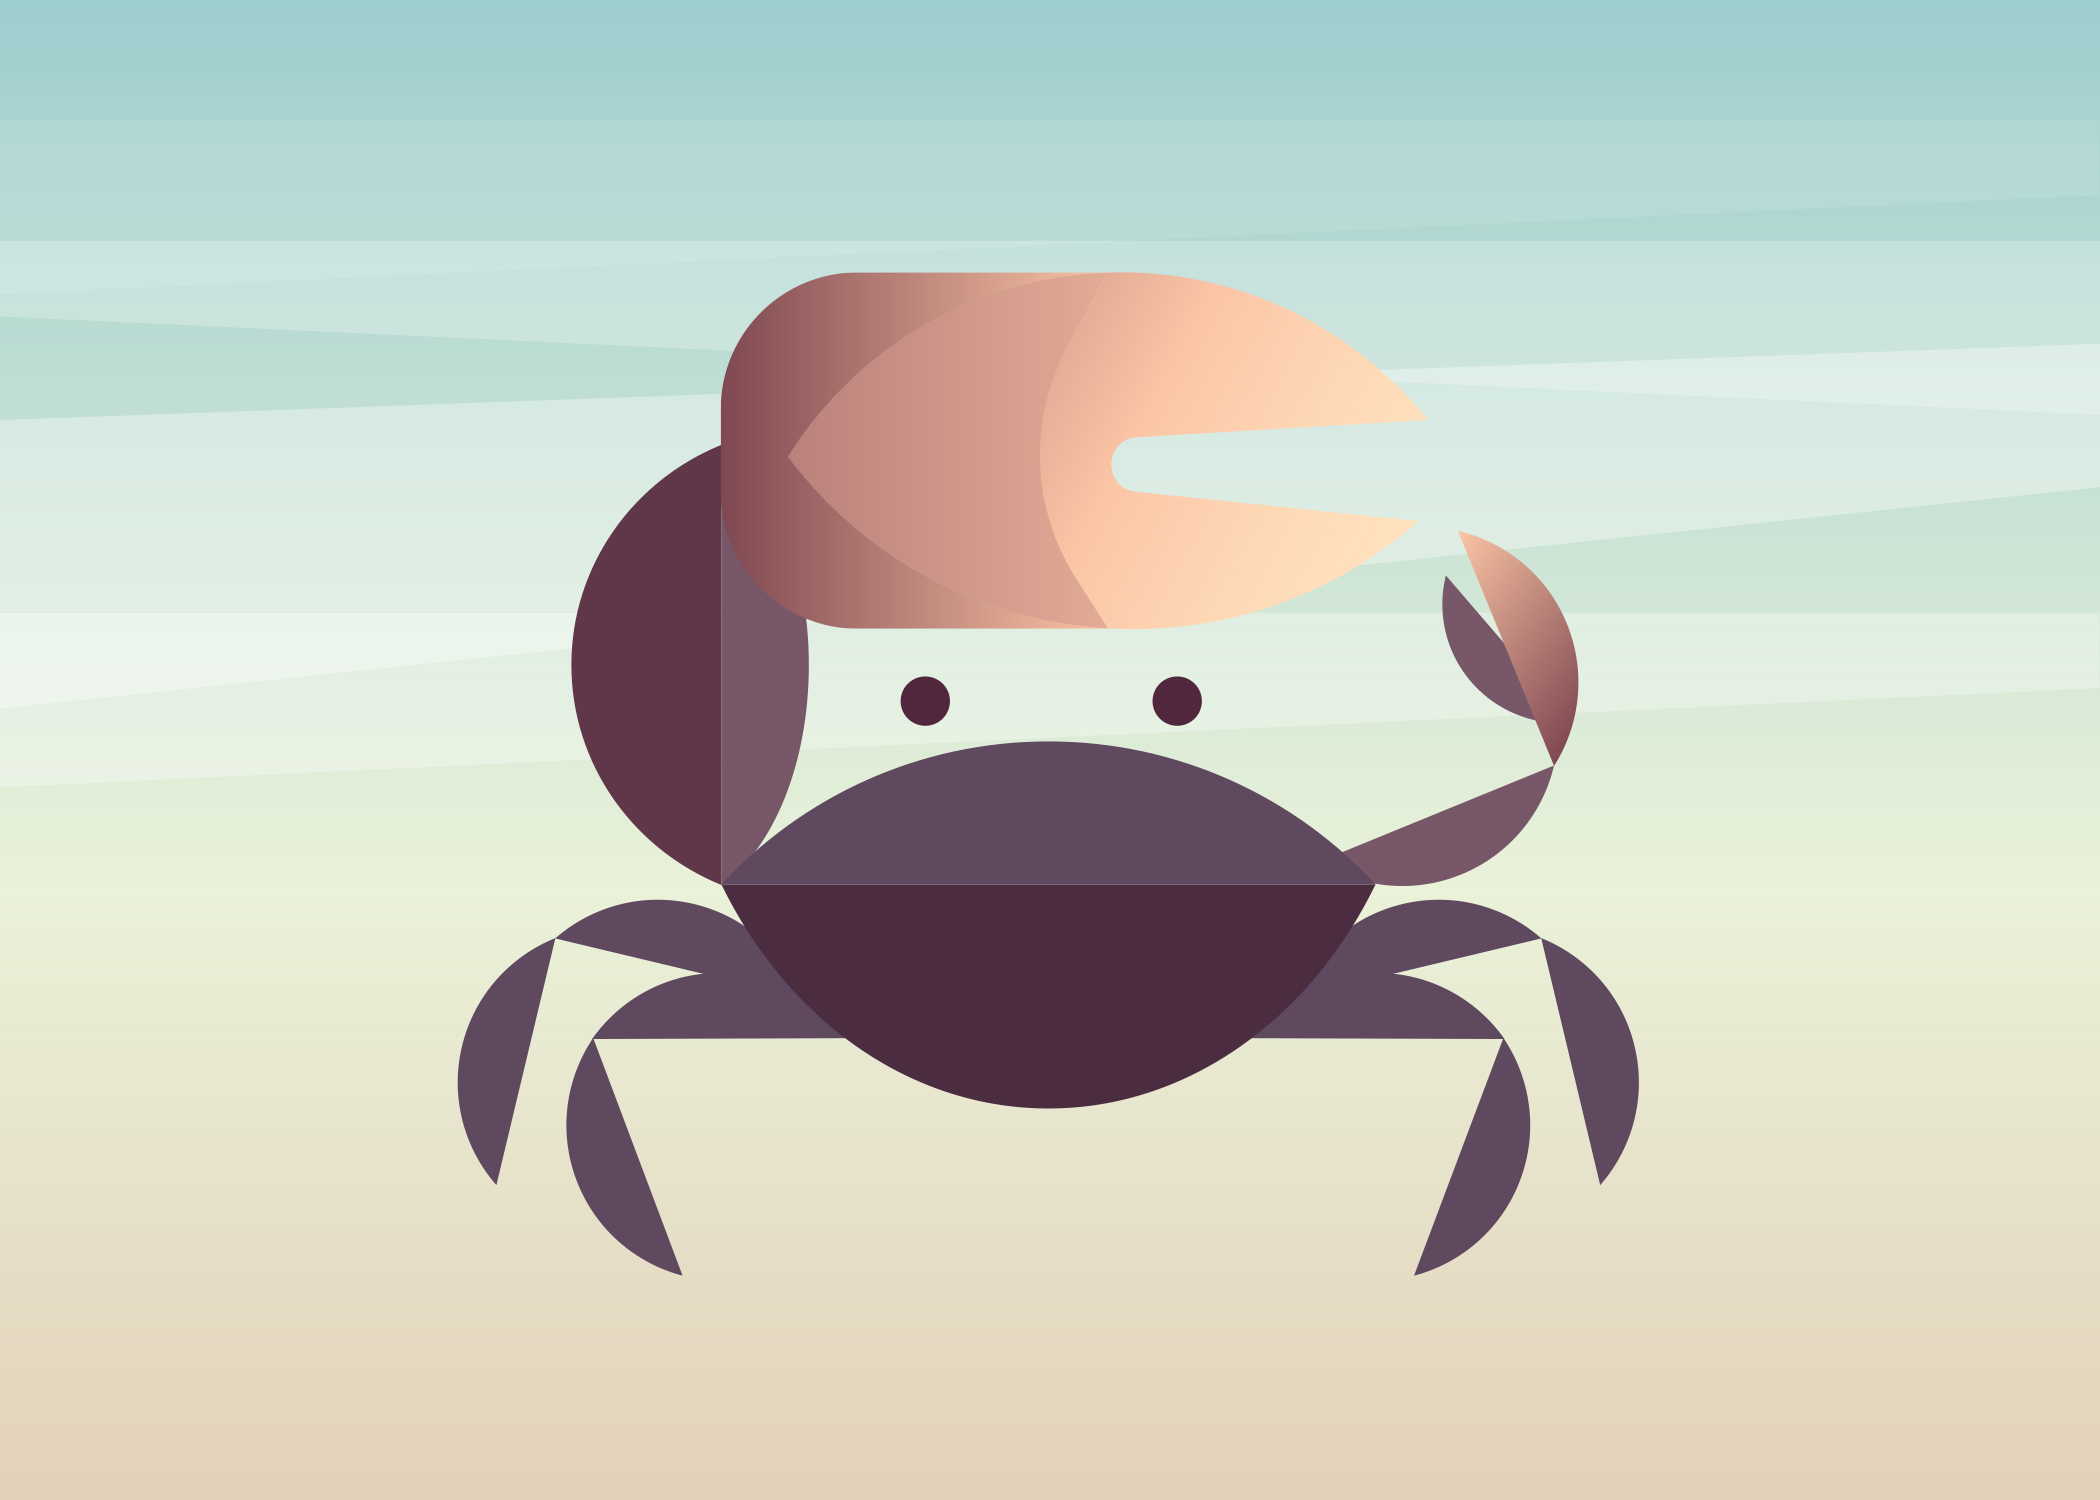 Prints-RGB-5x7_Crab.jpg